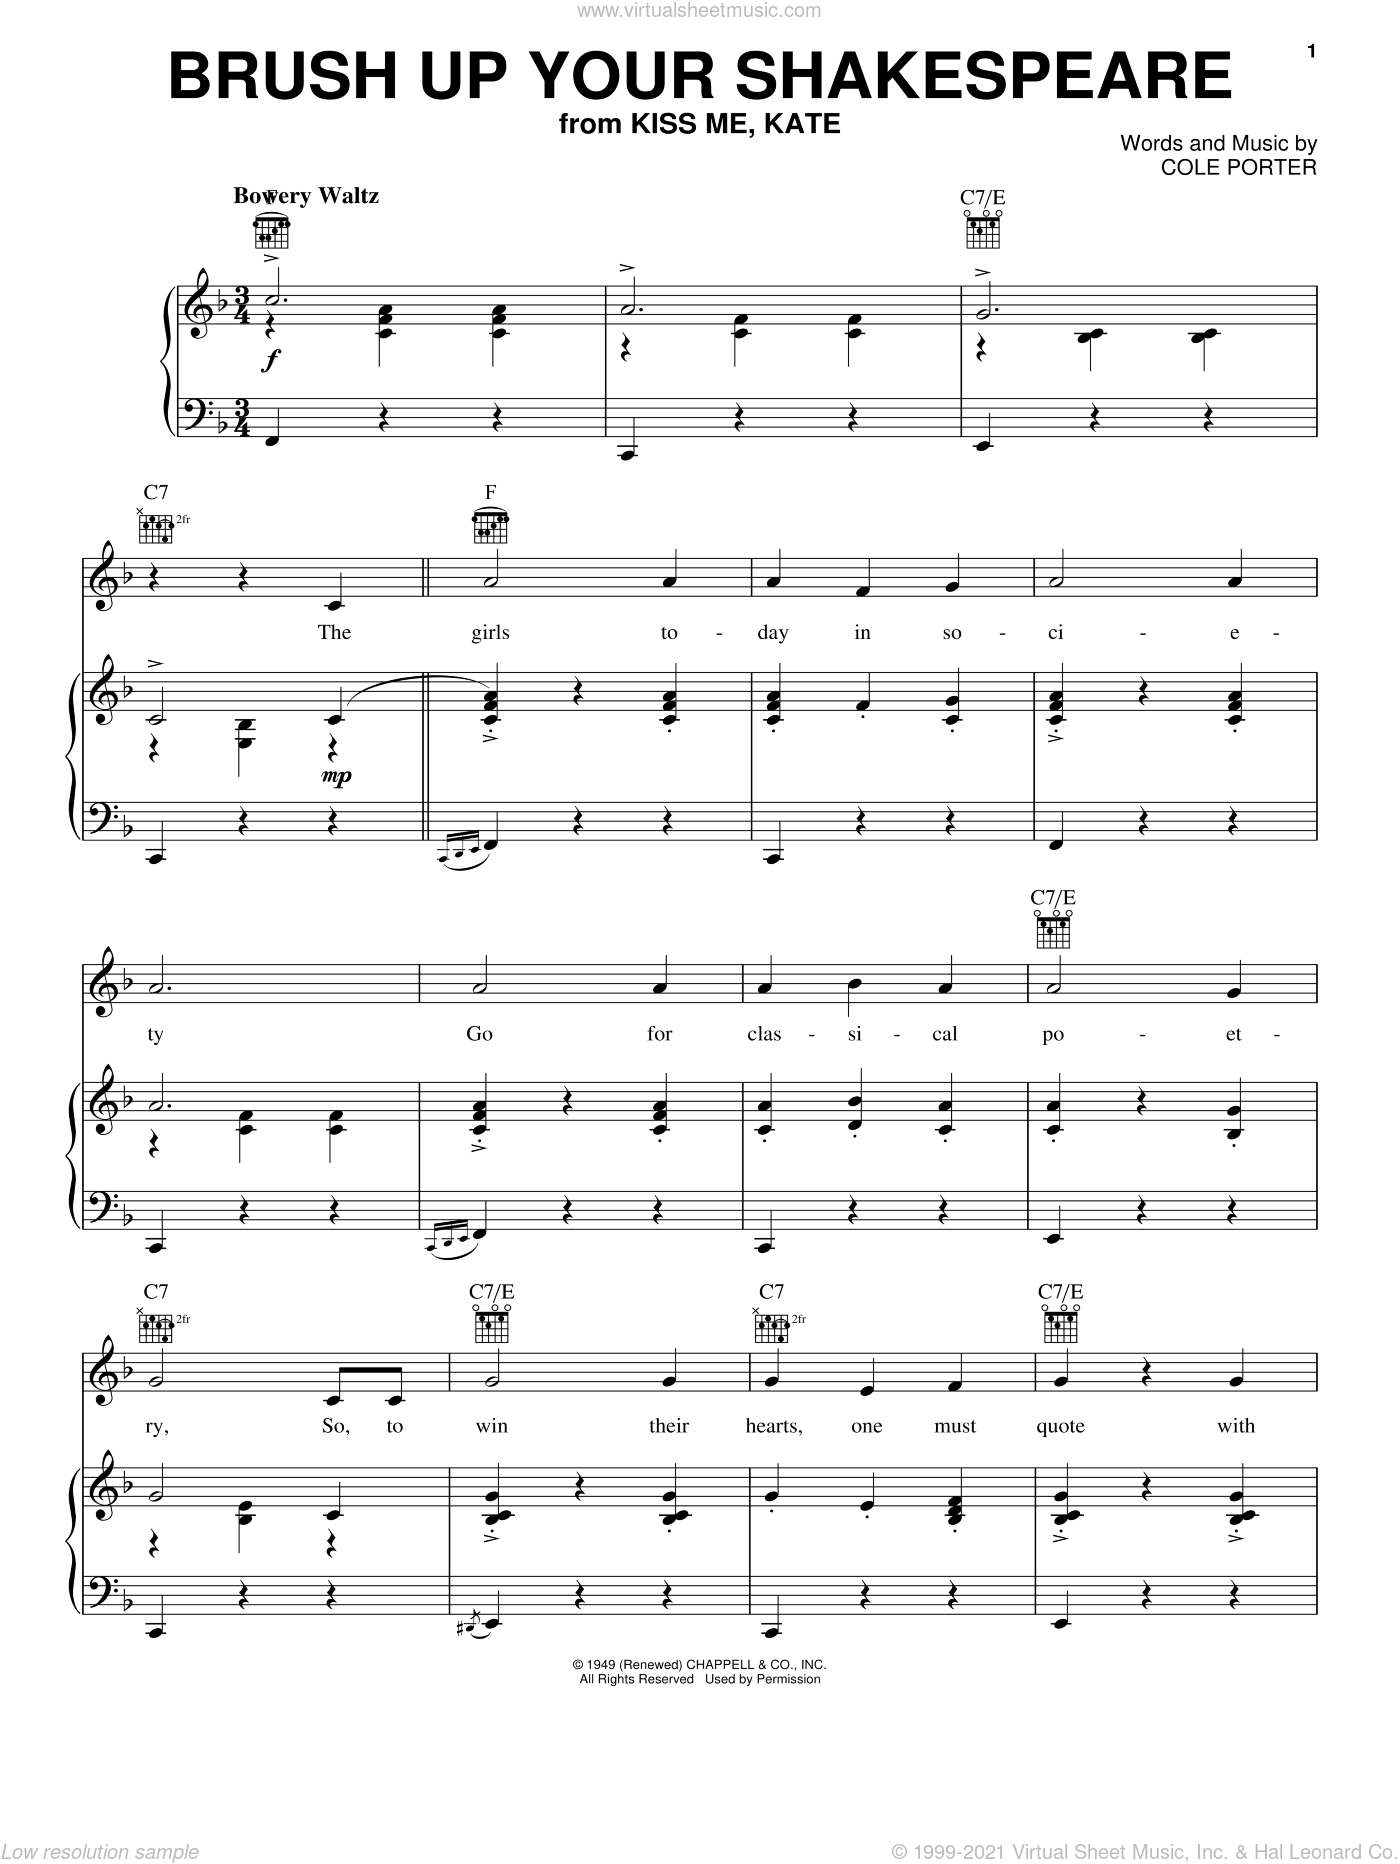 Brush Up Your Shakespeare sheet music for voice, piano or guitar by Cole Porter and Kiss Me, Kate (Musical), intermediate skill level